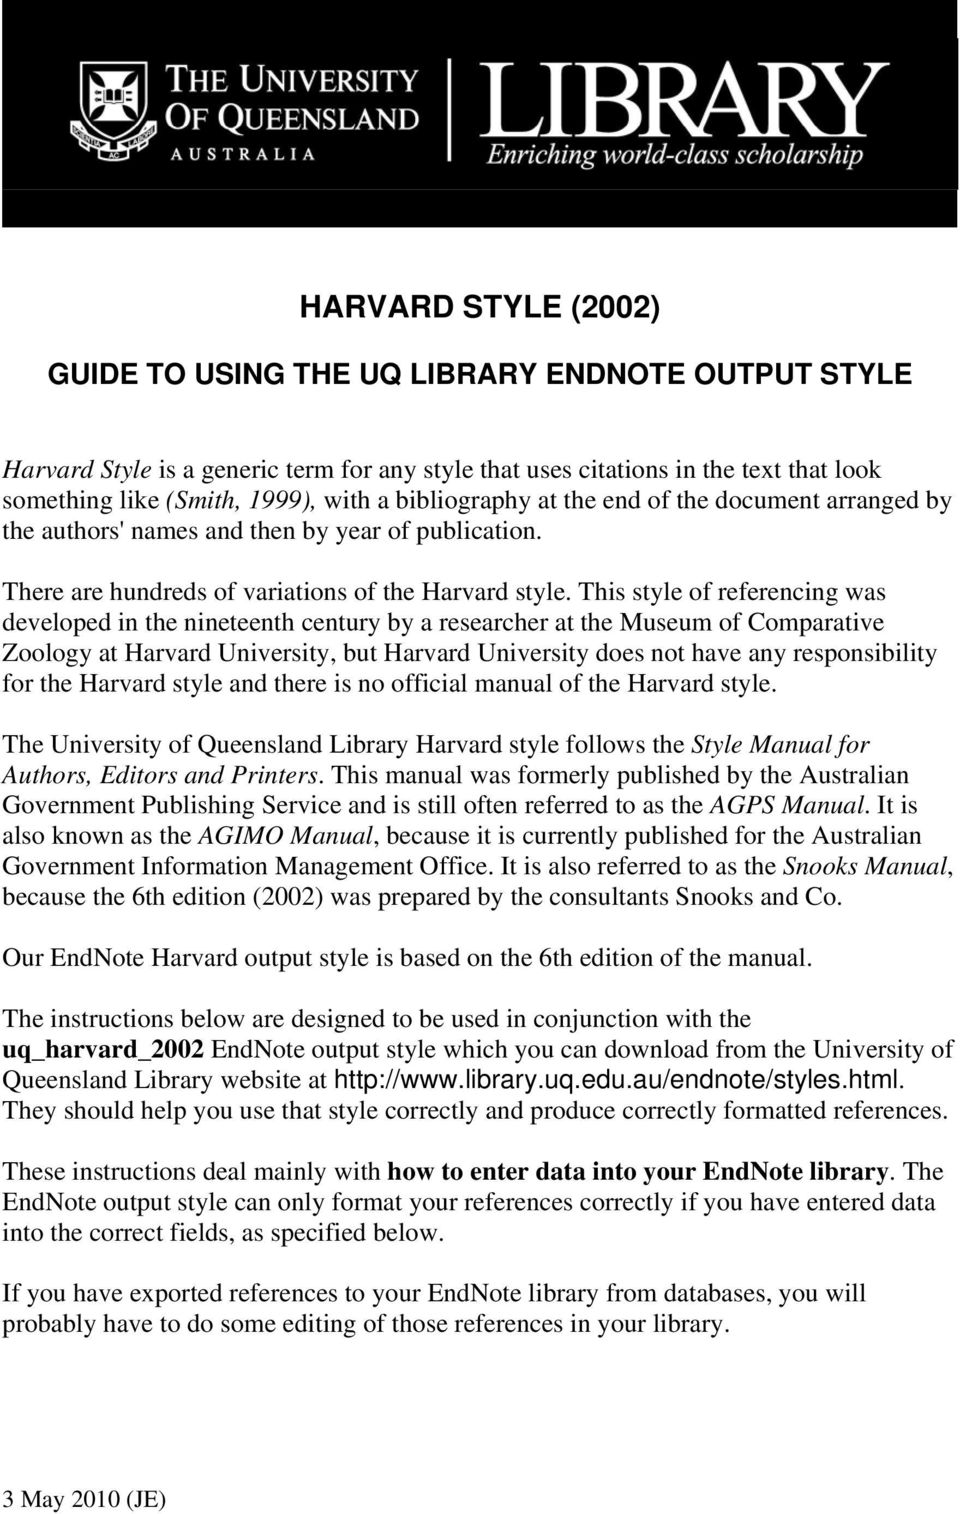 This style of referencing was developed in the nineteenth century by a researcher at the Museum of Comparative Zoology at Harvard University, but Harvard University does not have any responsibility